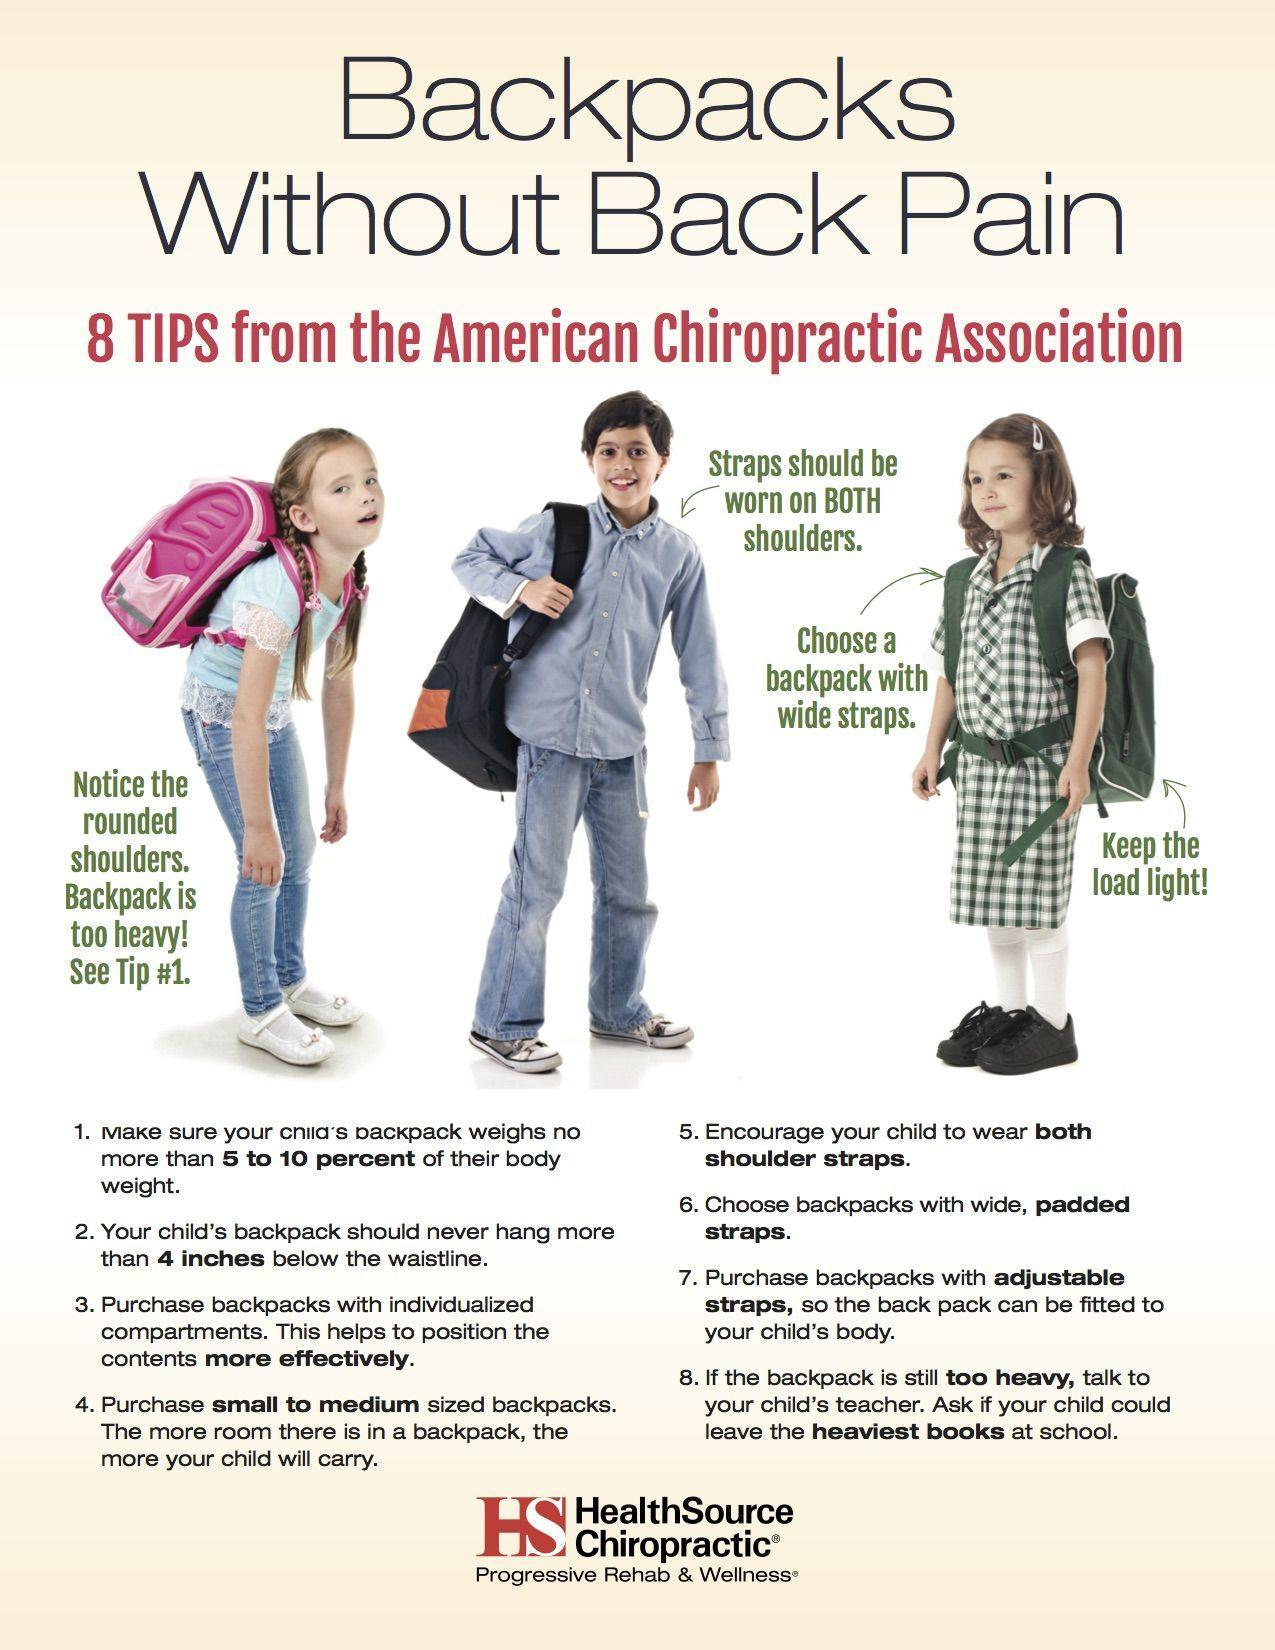 Back pain that begins in the adolescent years is considered to be a precursor to chronic low back pain as an adult. More than 90% of children in the United States carry backpacks, therefore, being instructed on proper backpack use is imperative.